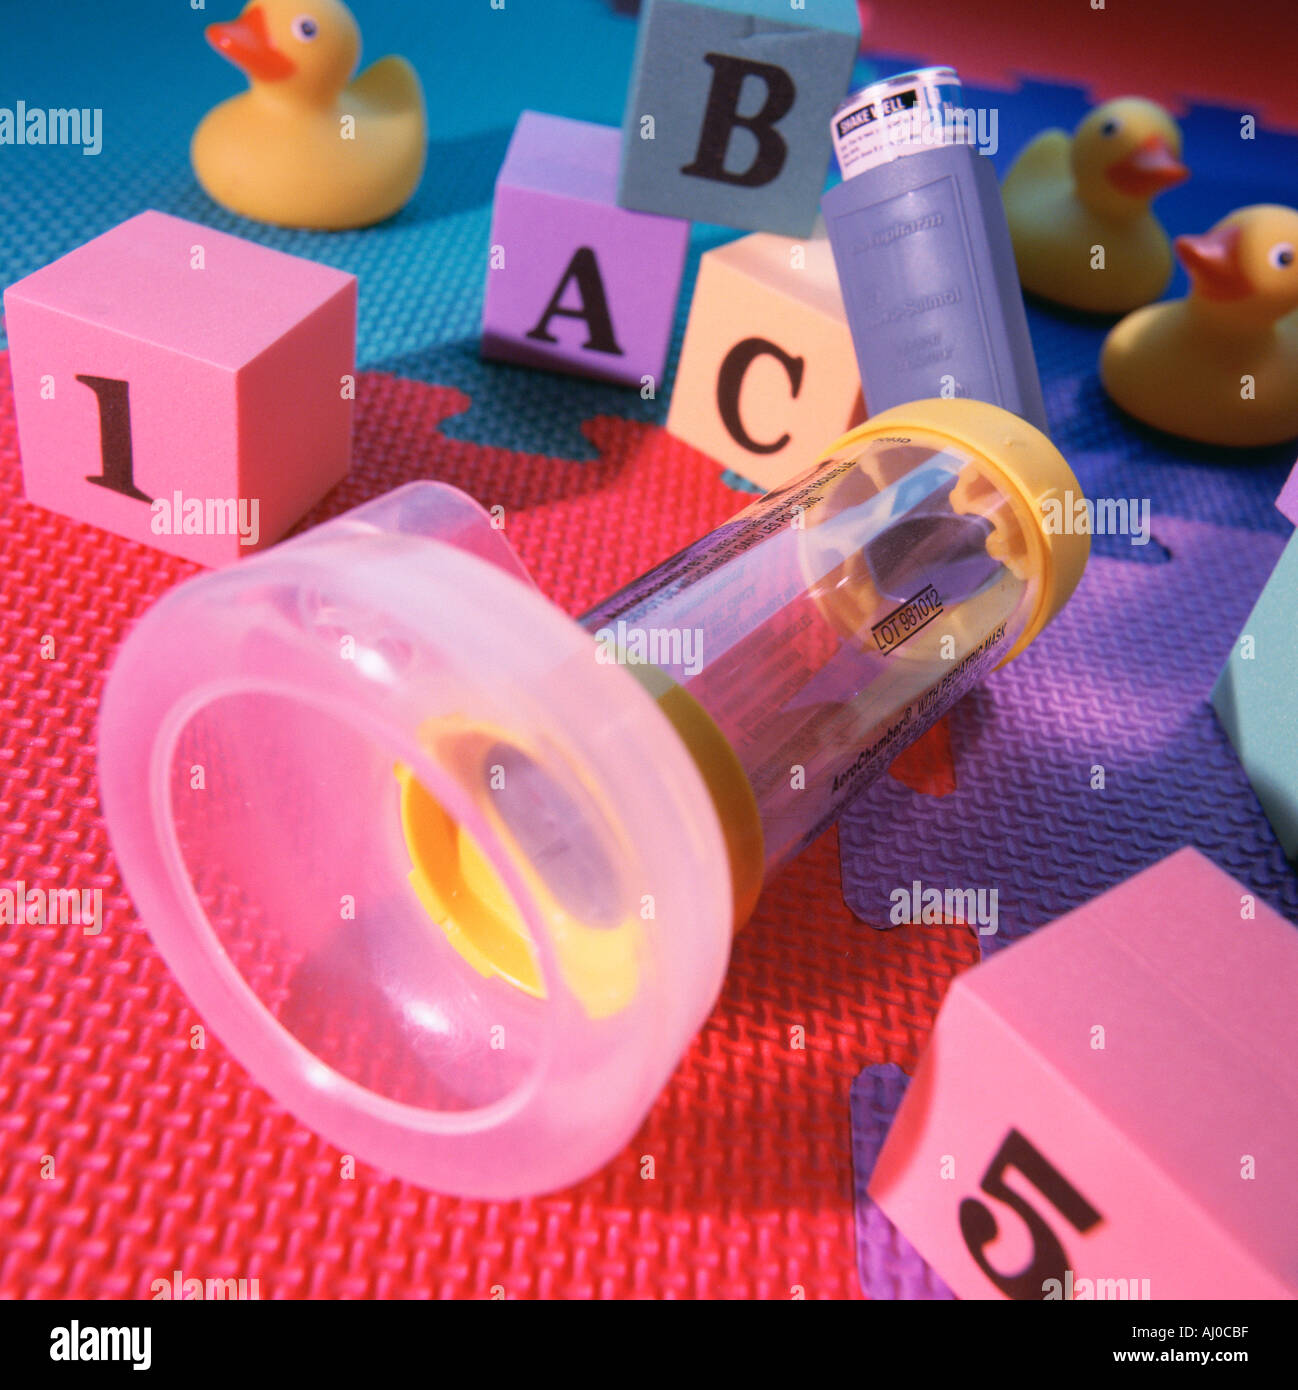 Close up of a child asthma inhaler lying on a puzzle mat amongst alphabet blocks and yellow toy ducks - Stock Image